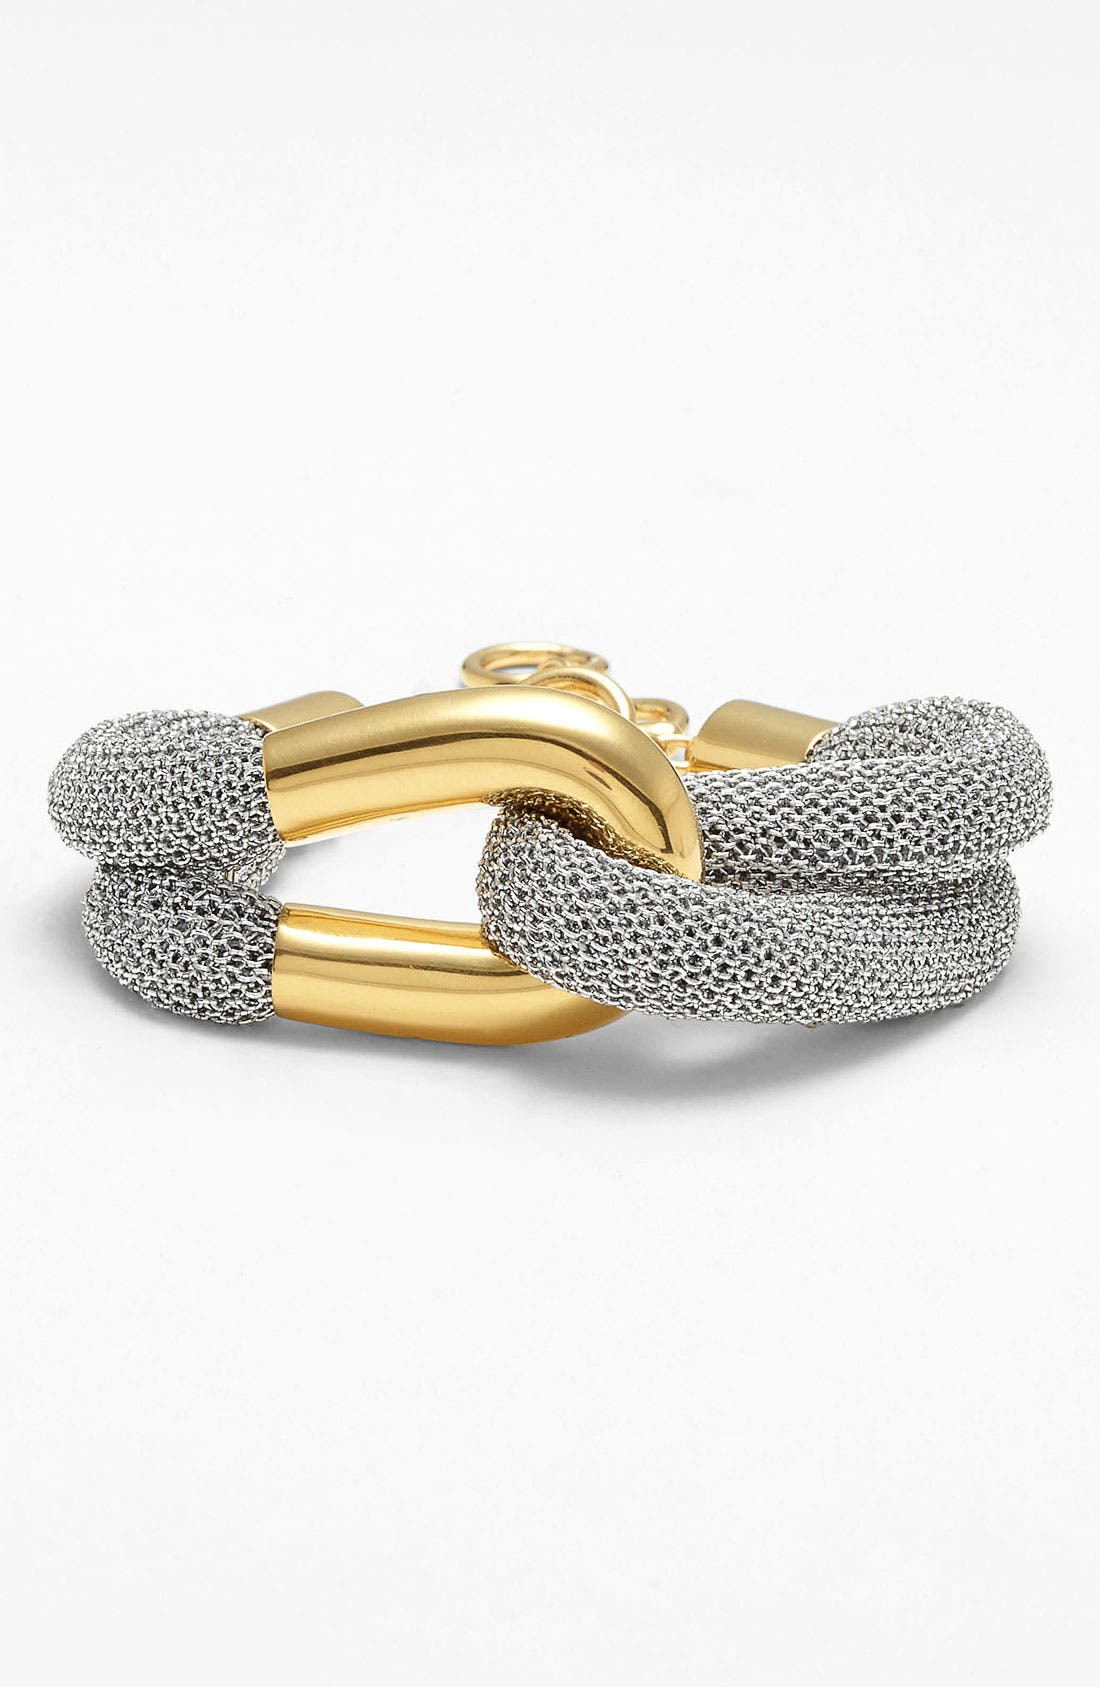 Main Image - Adami & Martucci 'Mesh' Toggle Bracelet (Nordstrom Exclusive)